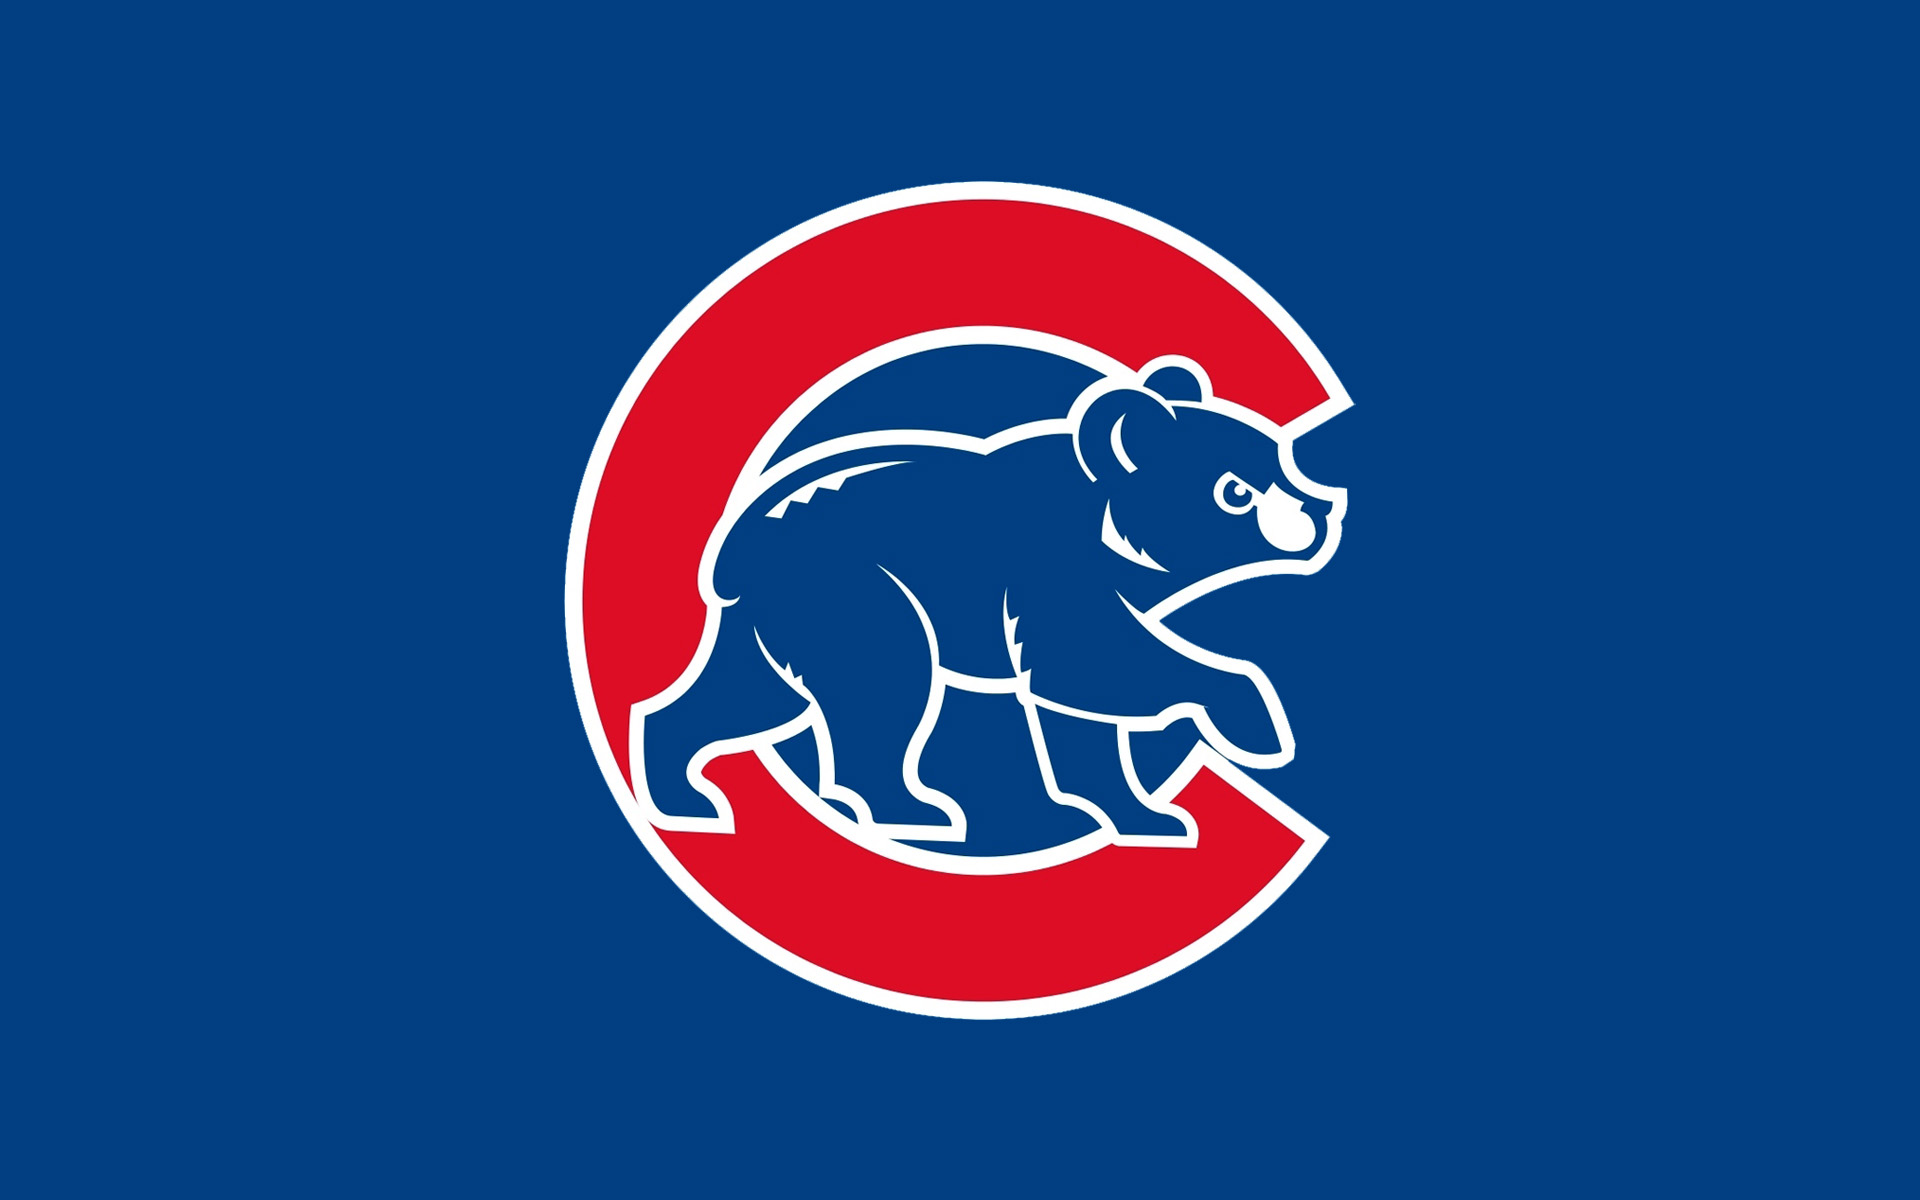 jpeg 189kB Awesome Chicago Cubs wallpaper Chicago Cubs wallpapers 1920x1200